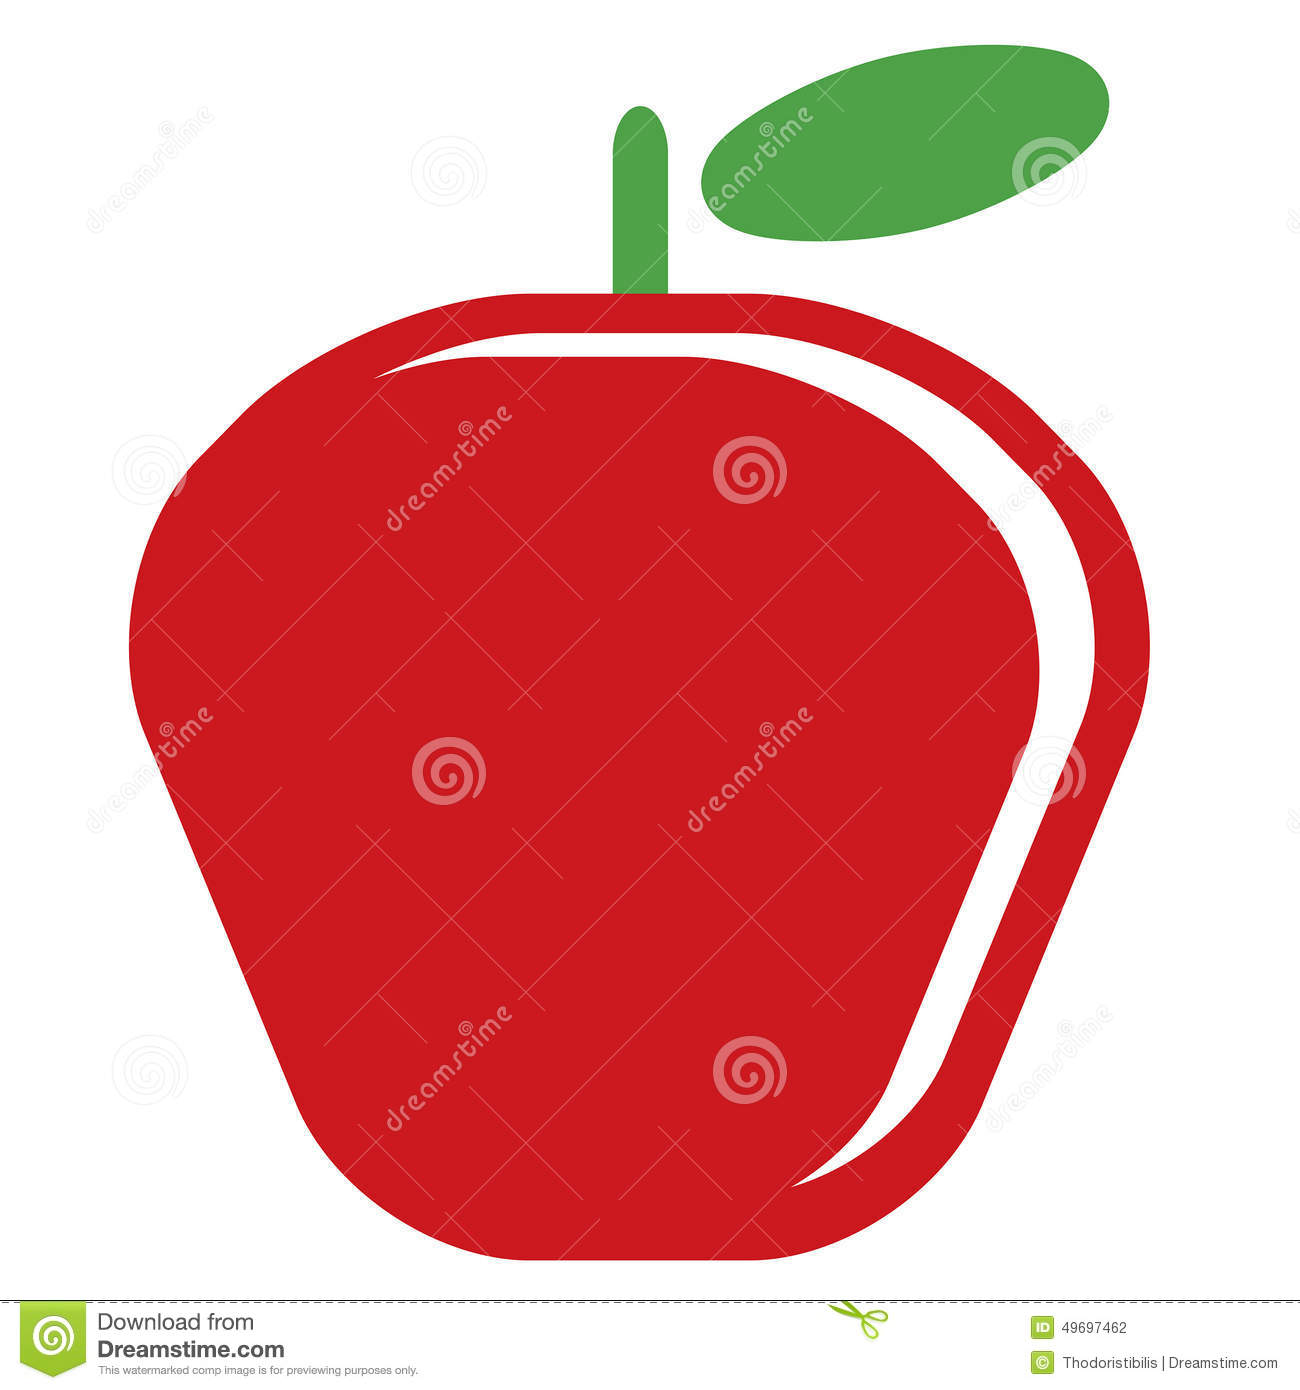 delicious green apple illustration - photo #42